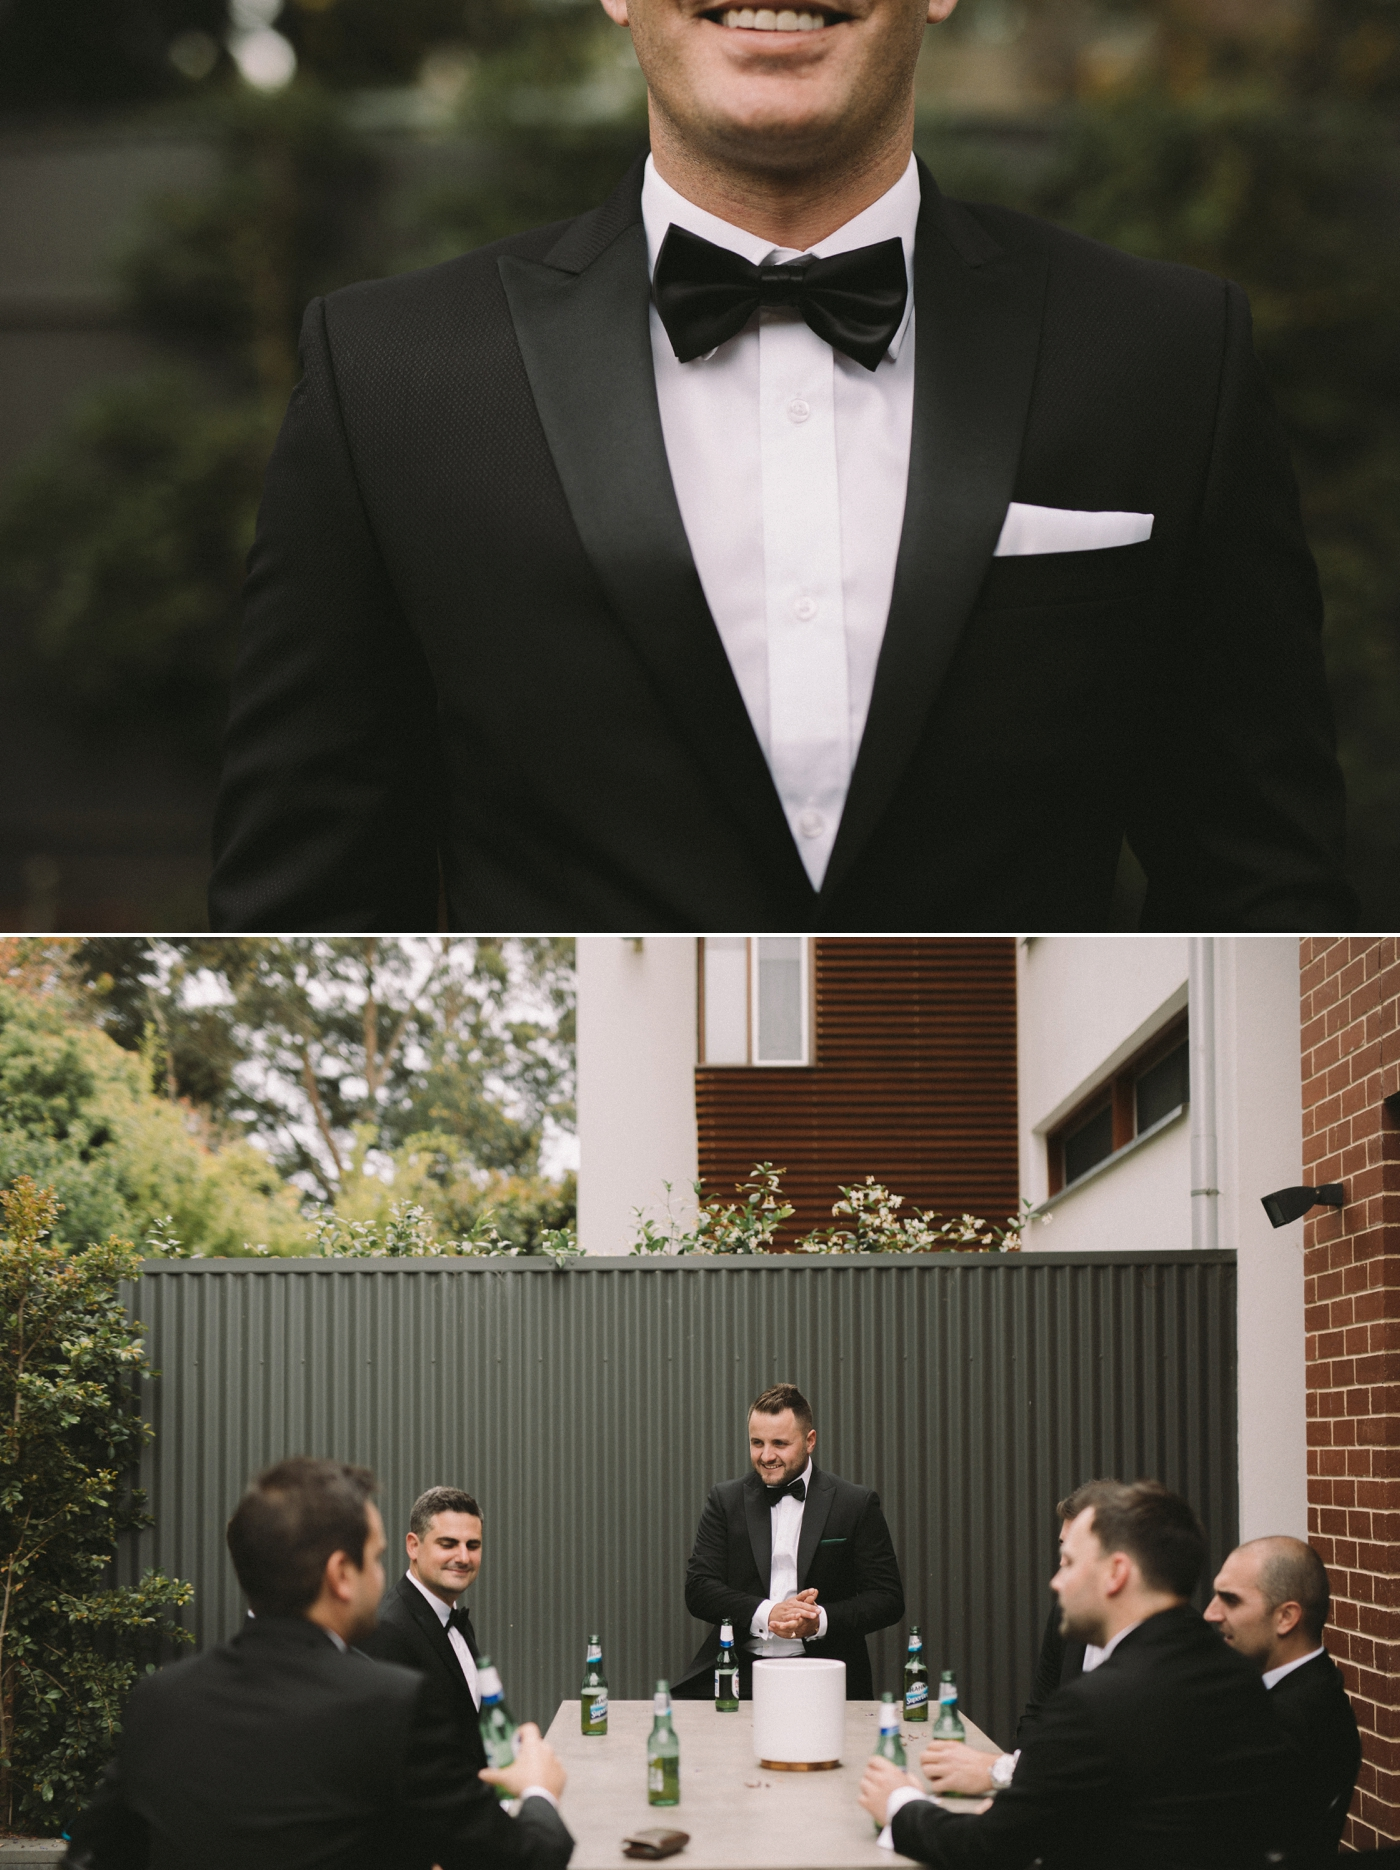 Rebecca & Daniel - Adelaide Hills Private Property Wedding Photographer - Fine Art Wedding Photographer Australia - Katherine Schultz - www.katherineschultzphotography.com_0005.jpg